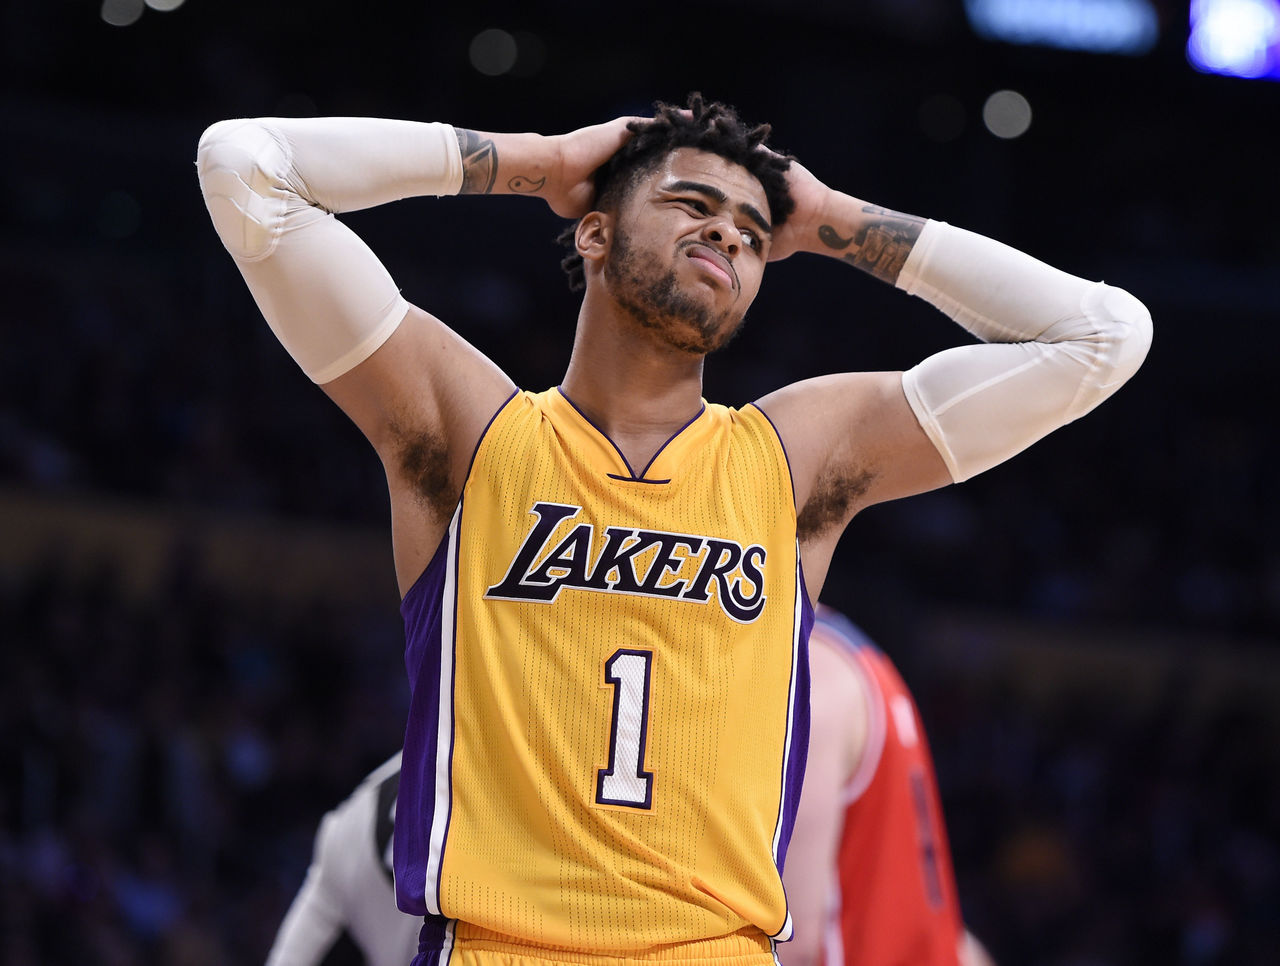 Cropped_2017-03-29t050524z_782622197_nocid_rtrmadp_3_nba-washington-wizards-at-los-angeles-lakers